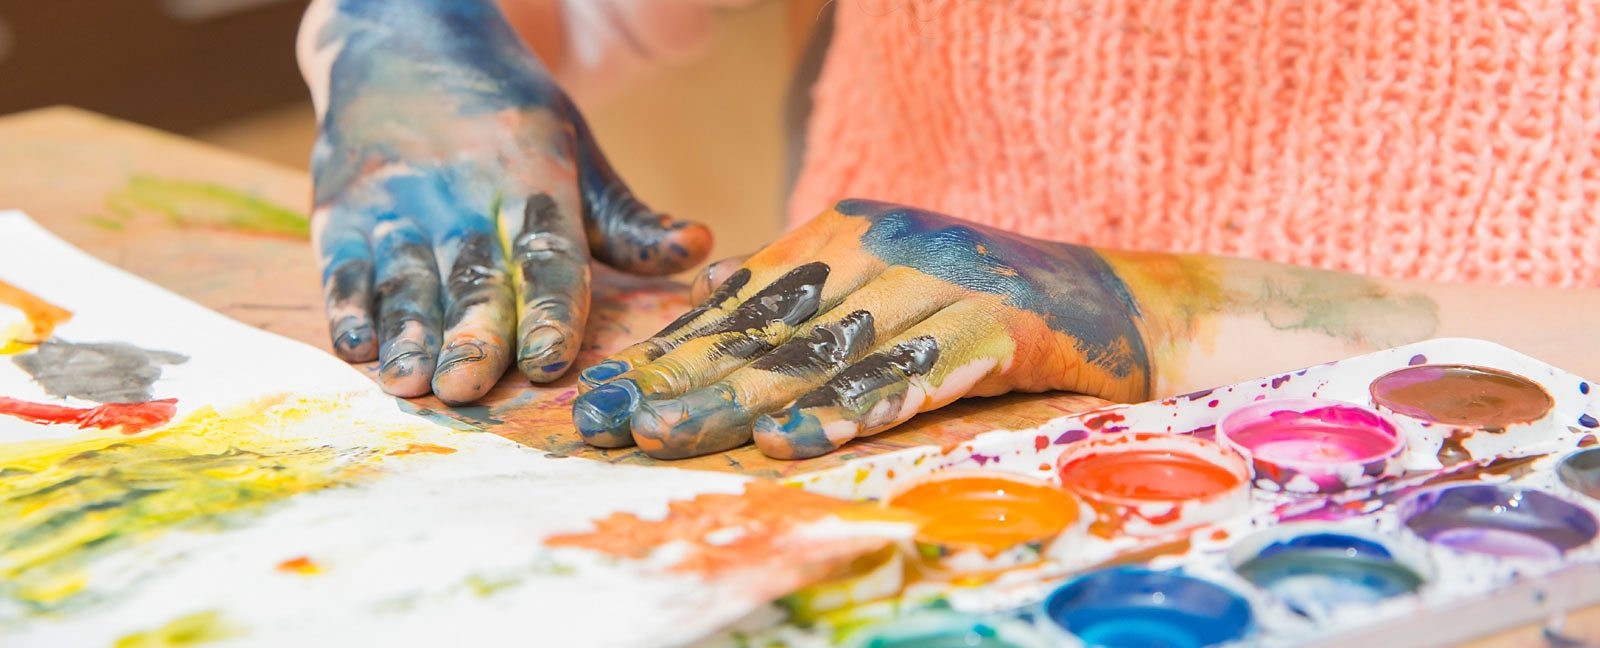 Best ideas about Kids Doing Arts And Crafts . Save or Pin What are the Benefits of Arts and Crafts for Kids Blog n Now.